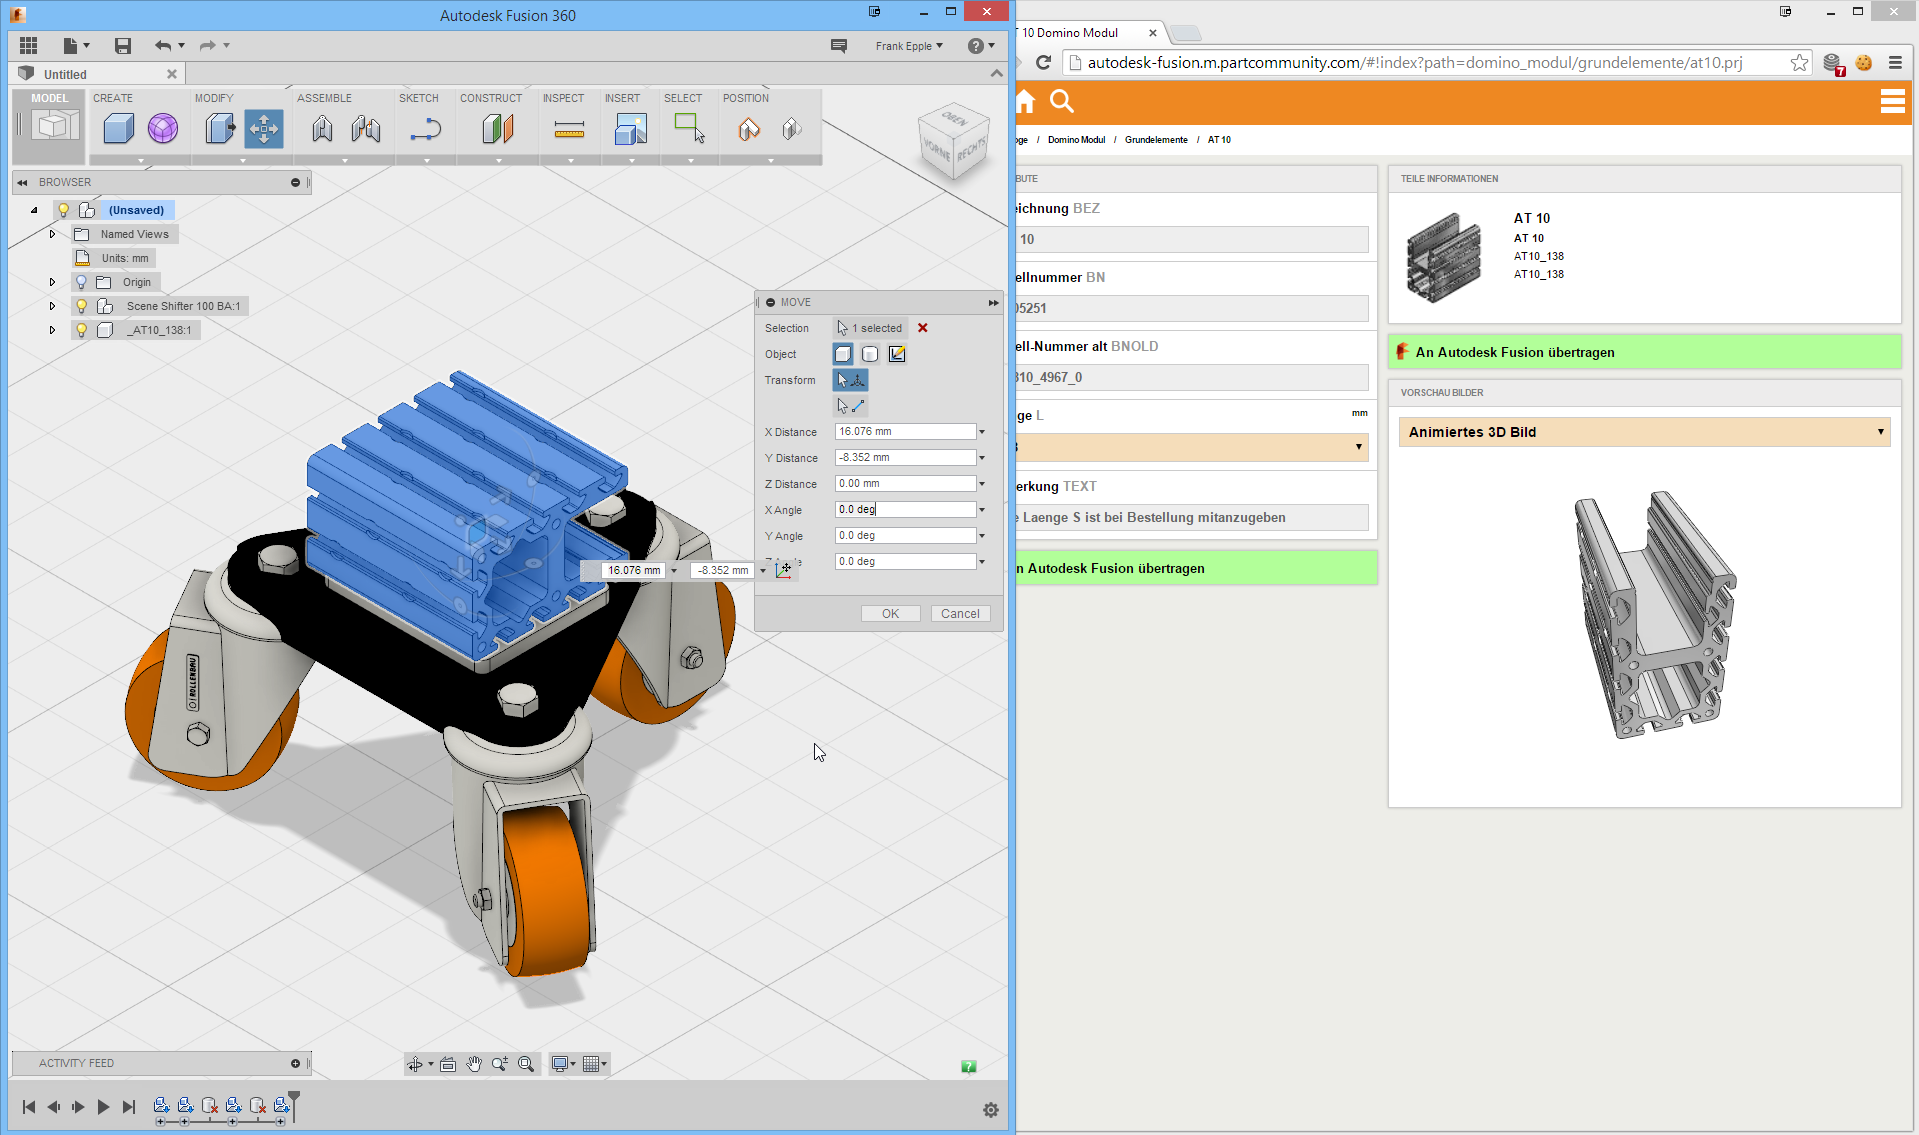 New App Provides Millions Of 3d Cad Models For Autodesk: 3d modeling app